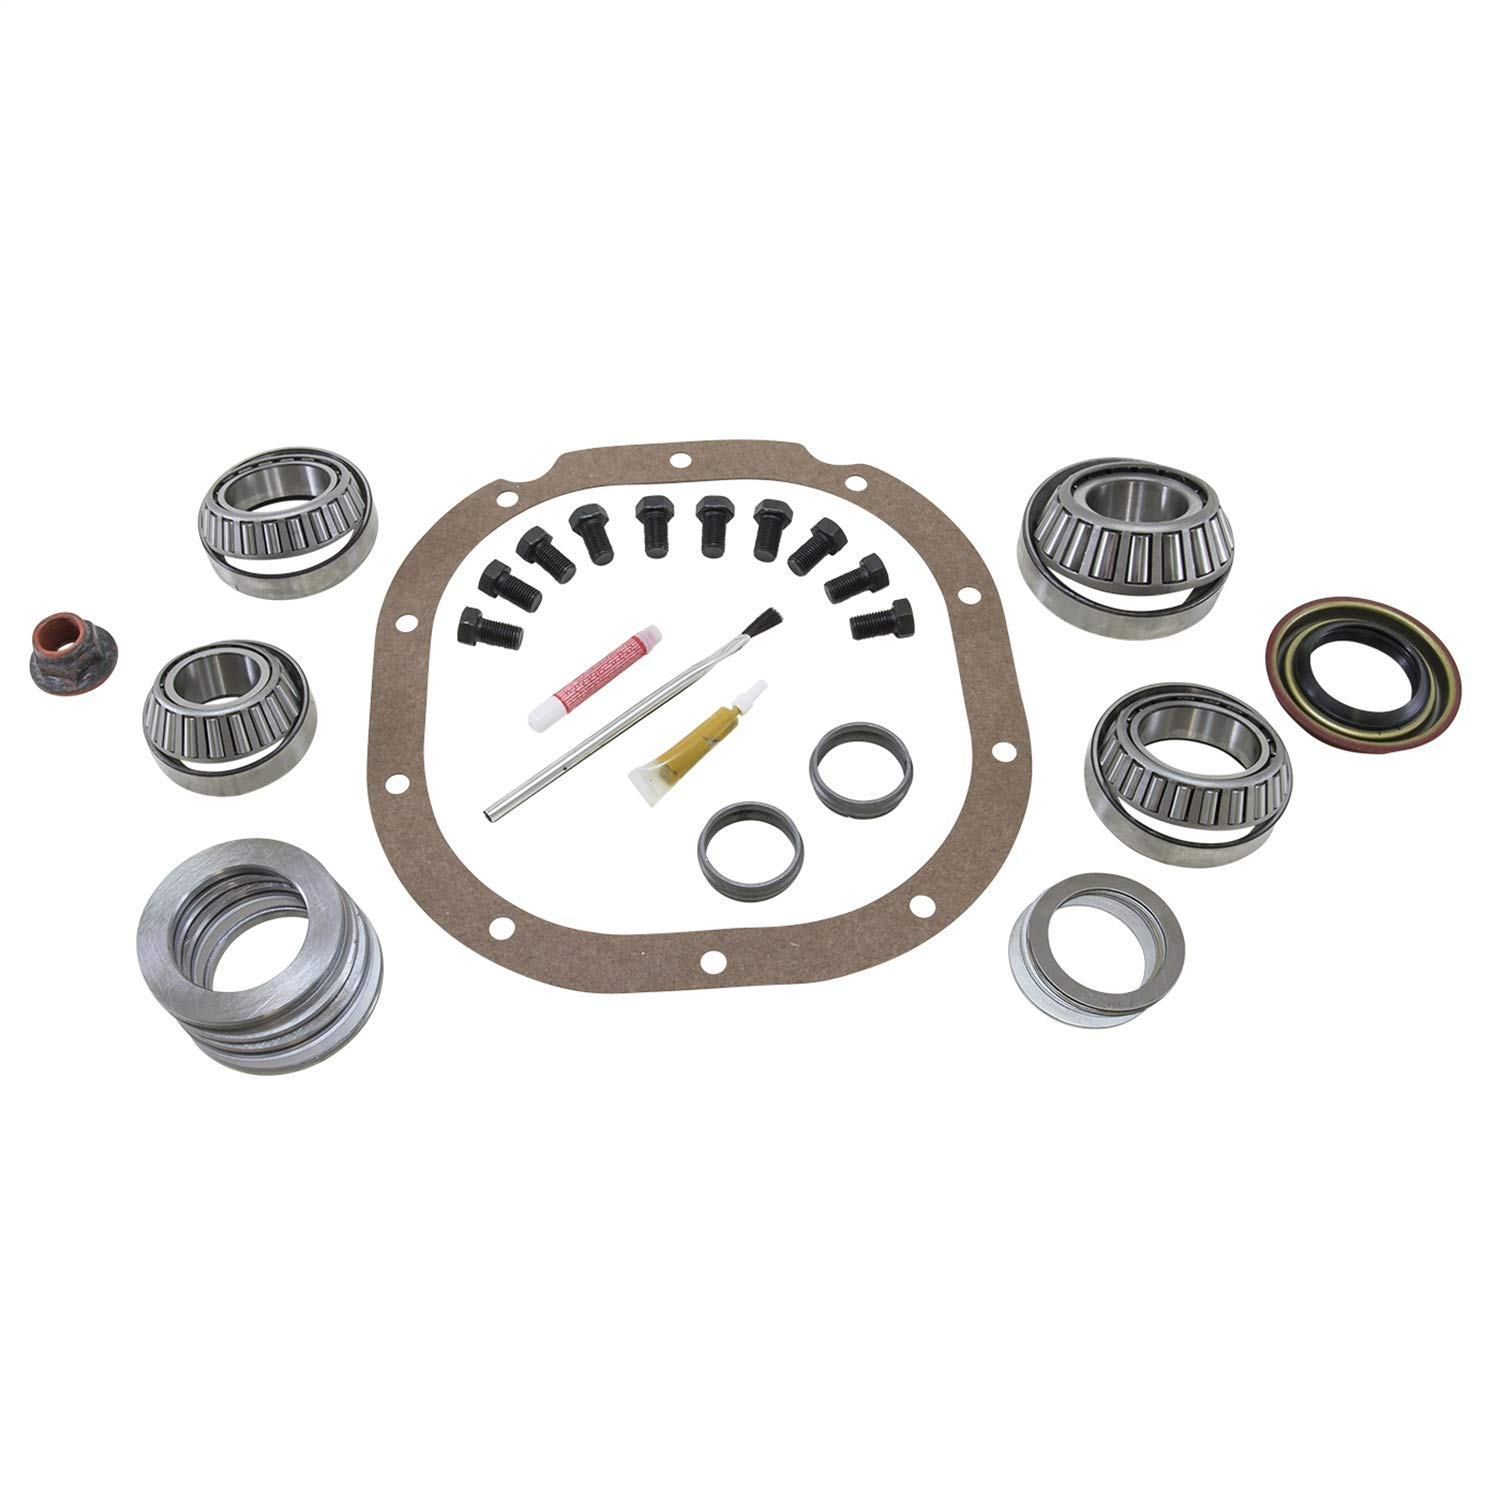 Master Overhaul Kit for Ford 8 Differential USA Standard Gear ZK F8